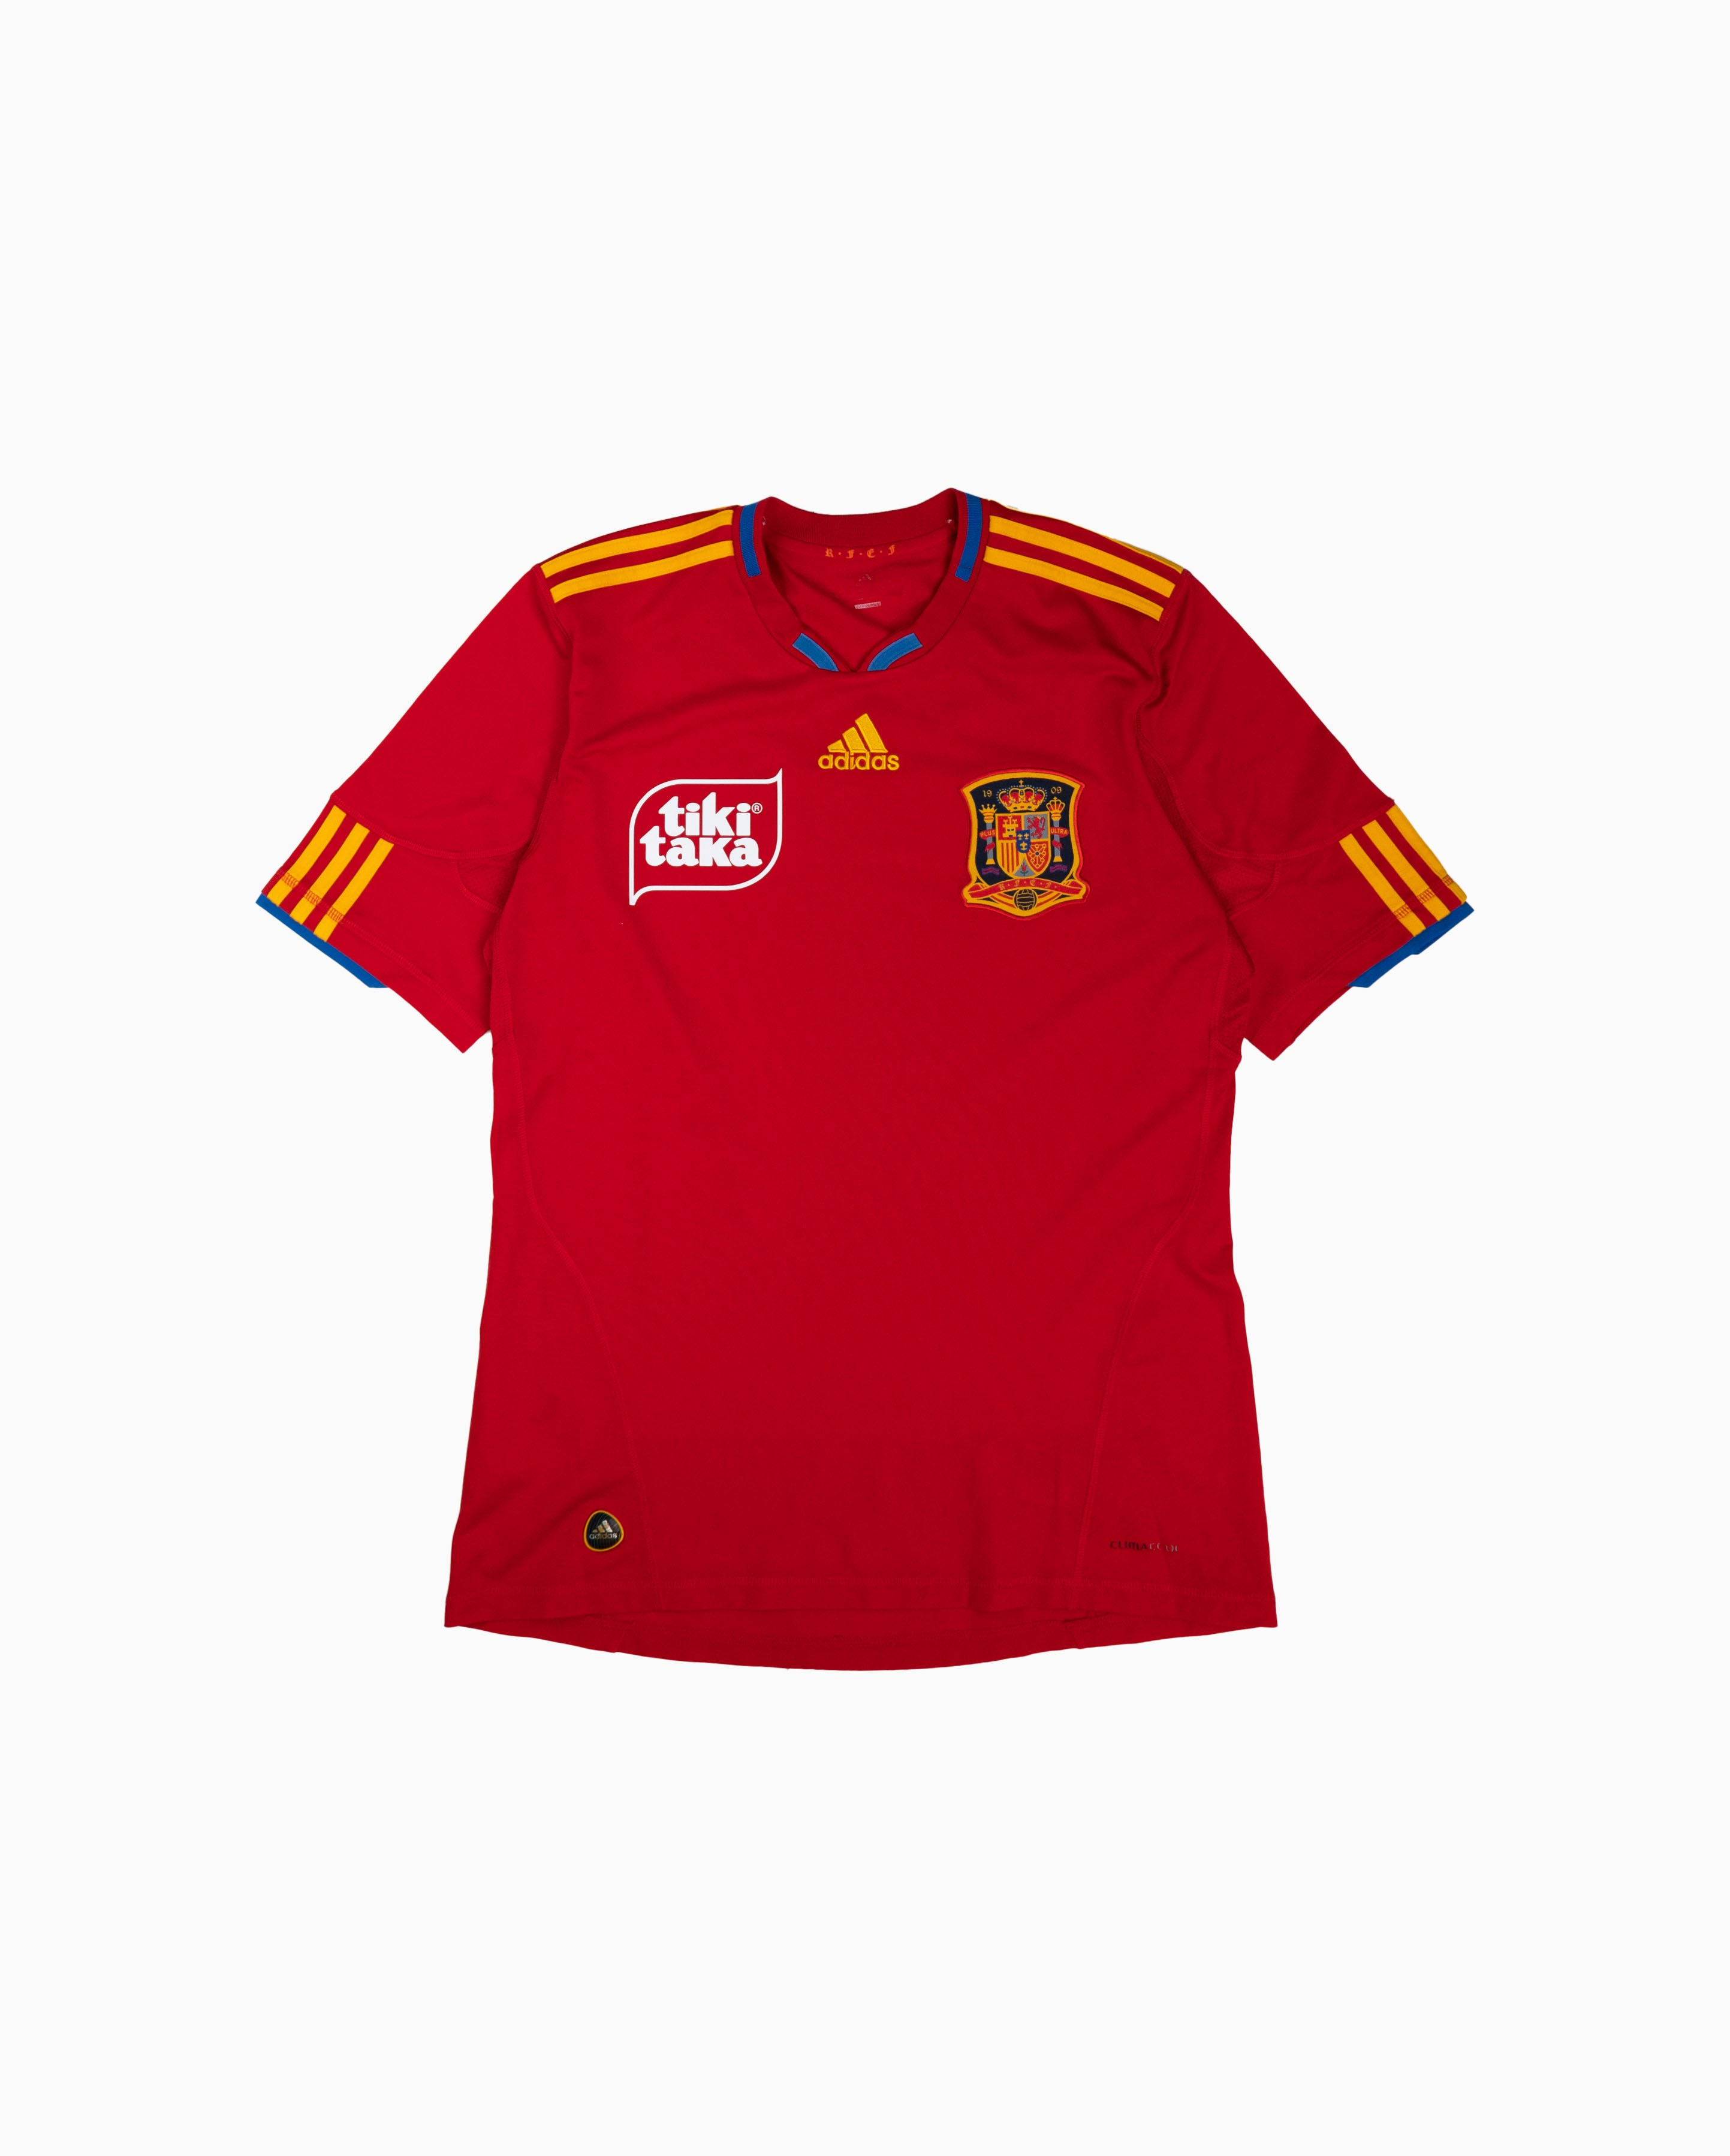 Customised Tiki Taka Spain shirt M #1